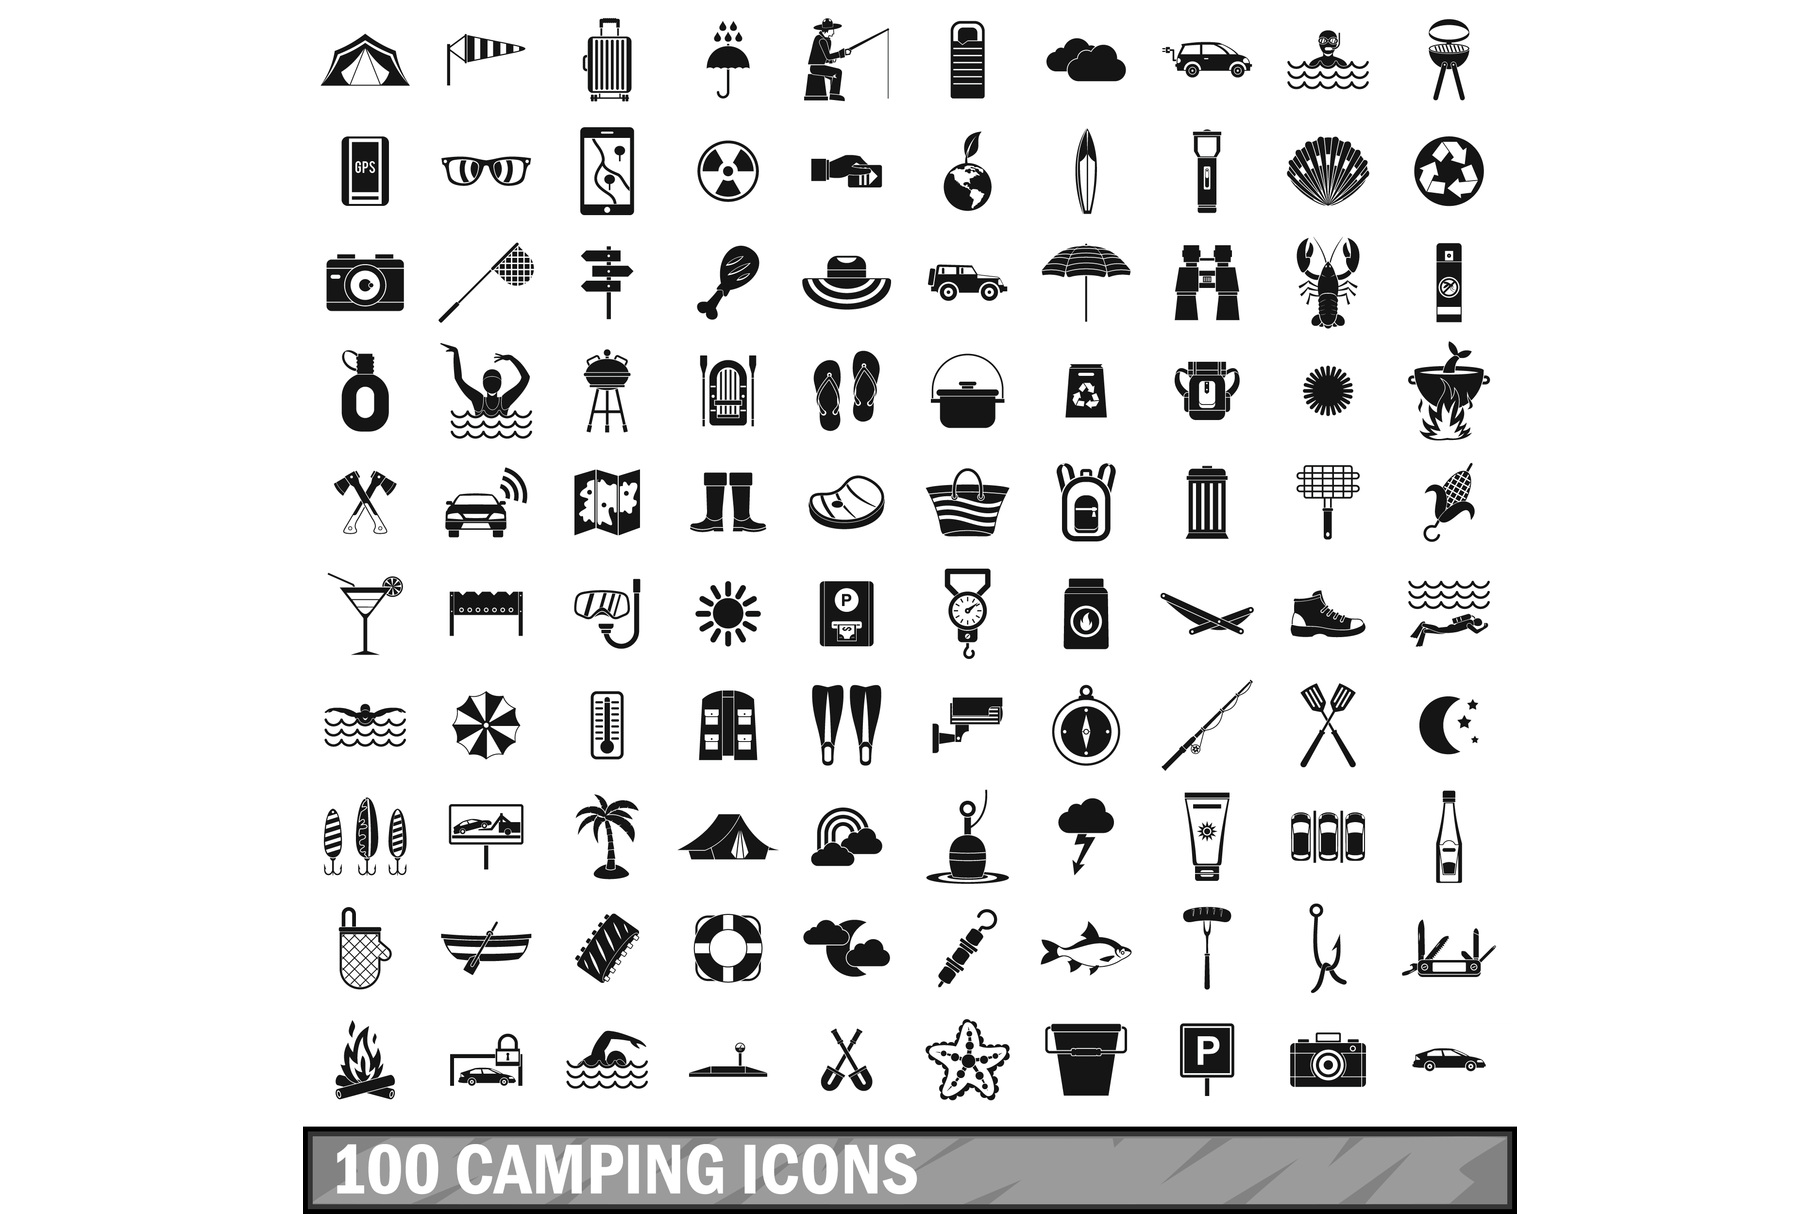 100 camping icons set, simple style example image 1